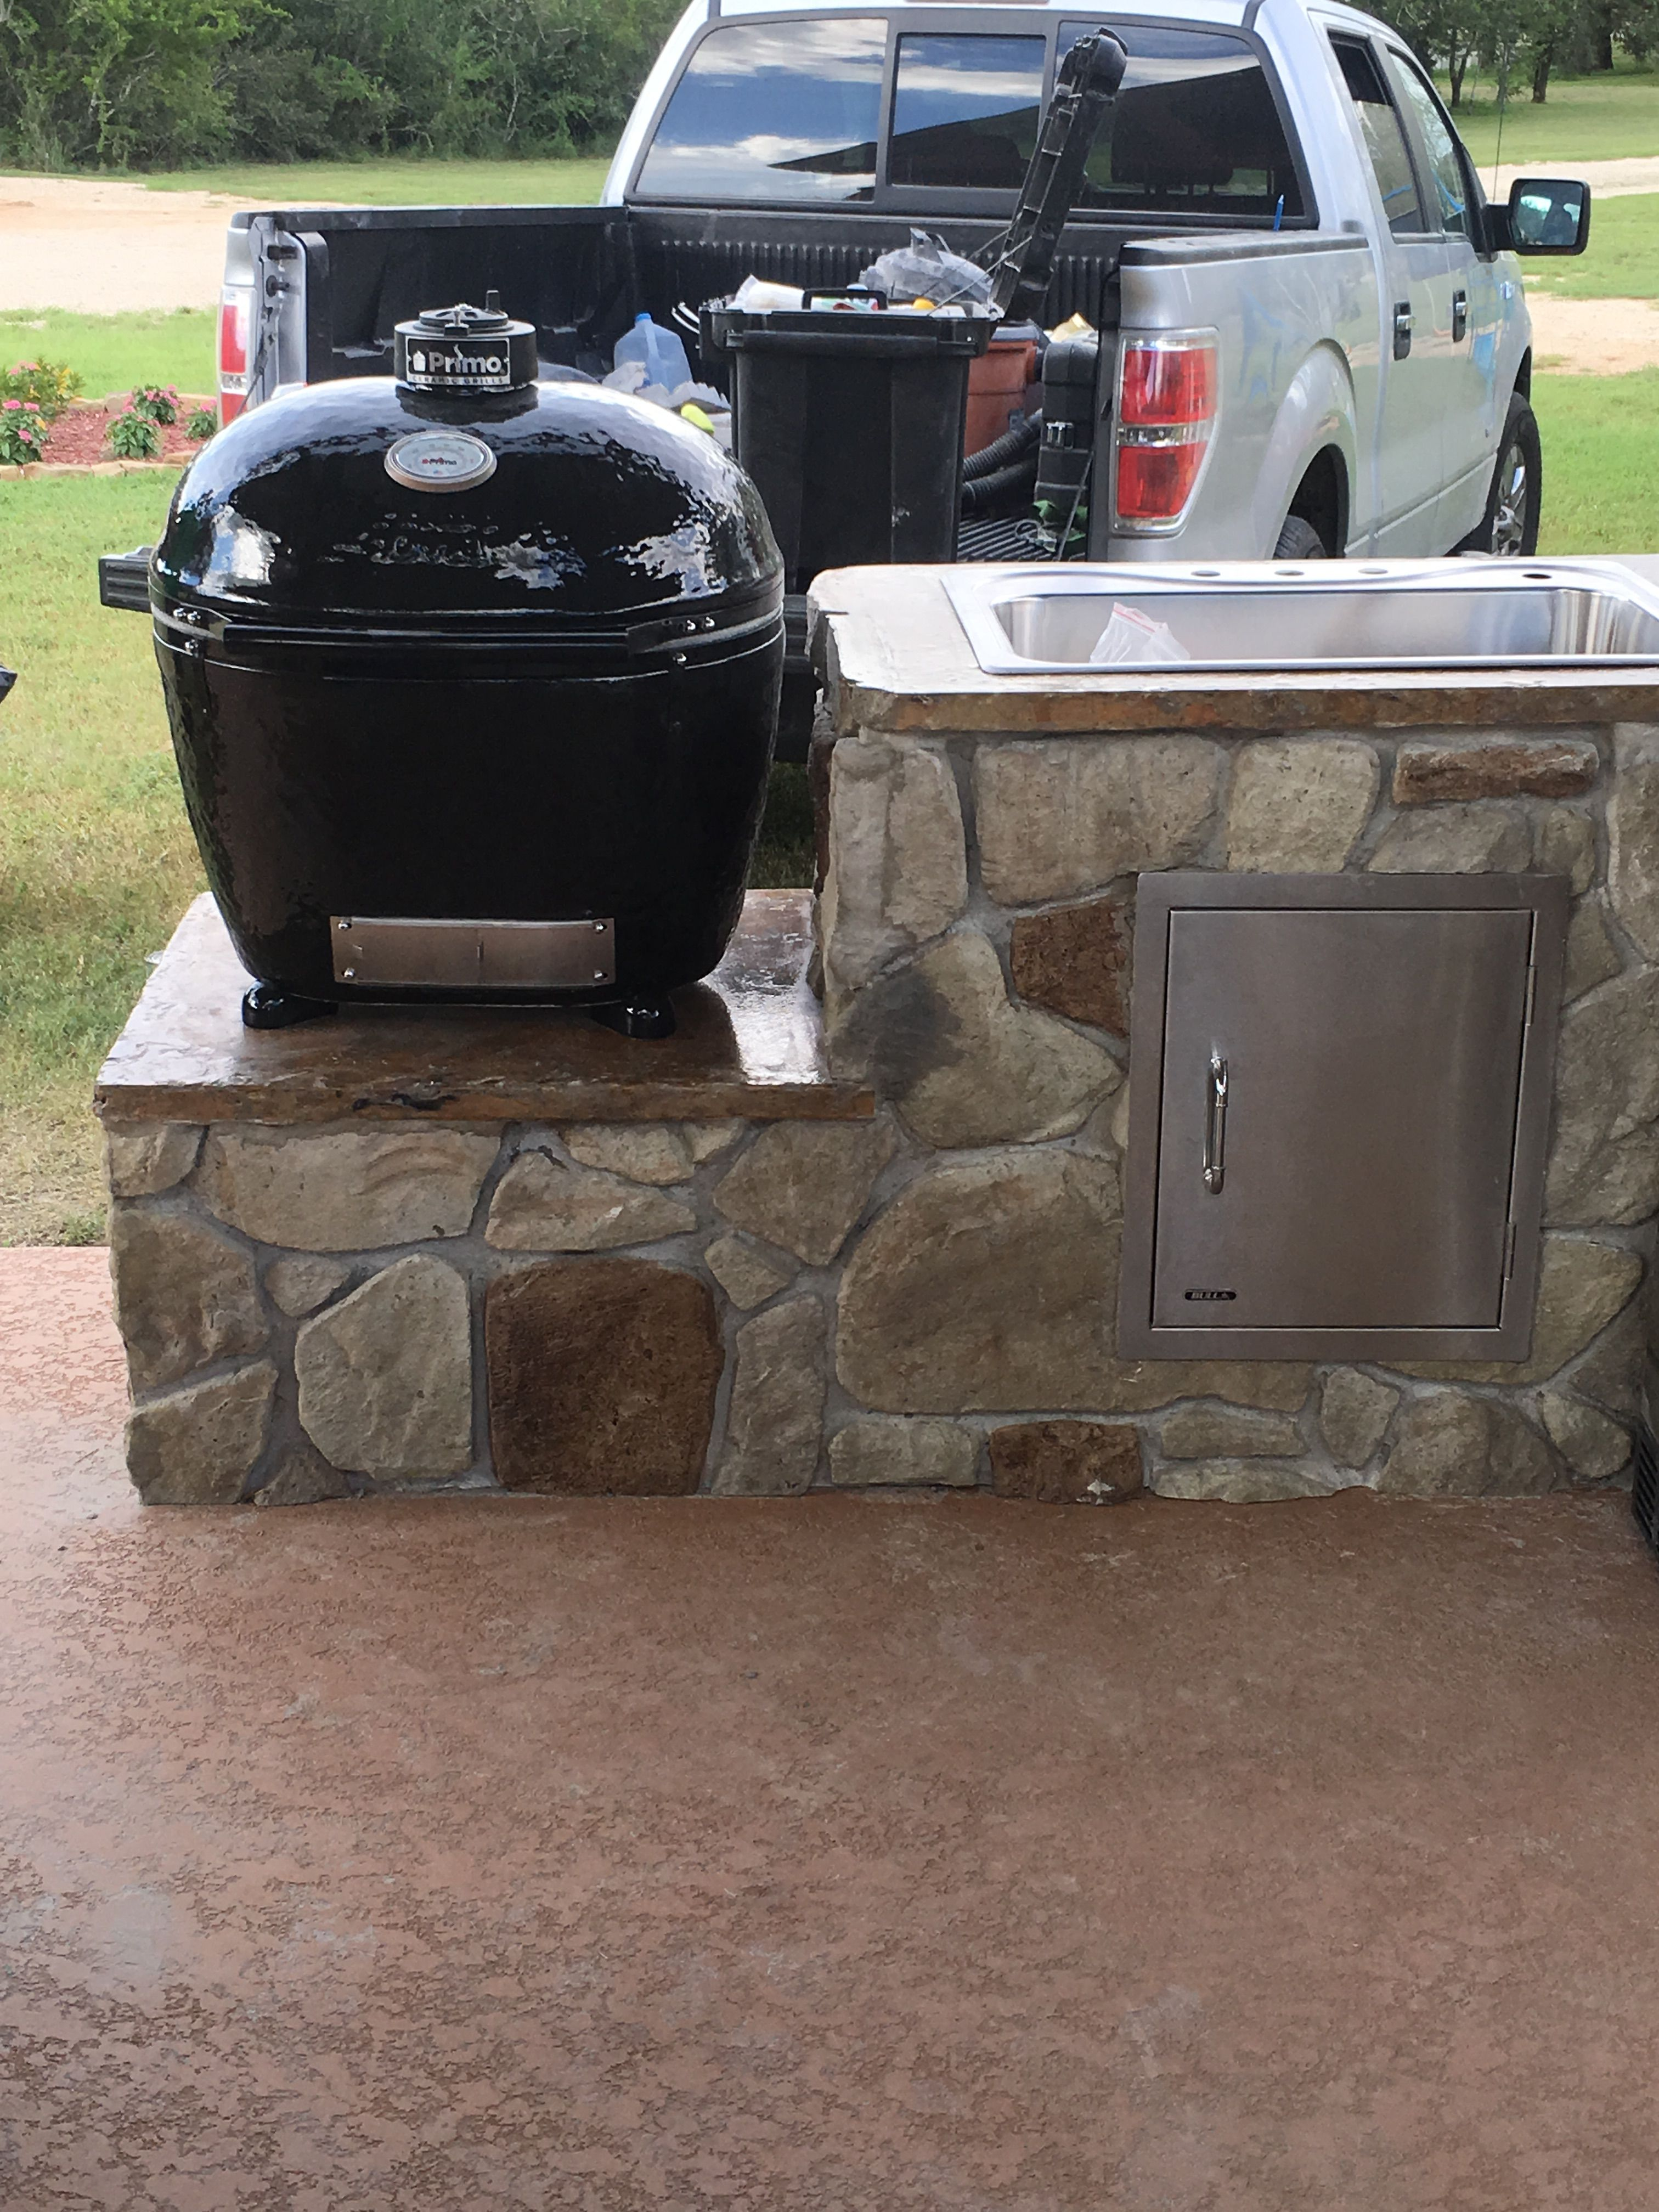 Outdoor Kitchen People Don T Believe This Is Made Of Concrete Created By Gebhardt Designs Austin San Antonio Area Outdoor Kitchen Outdoor Outdoor Decor